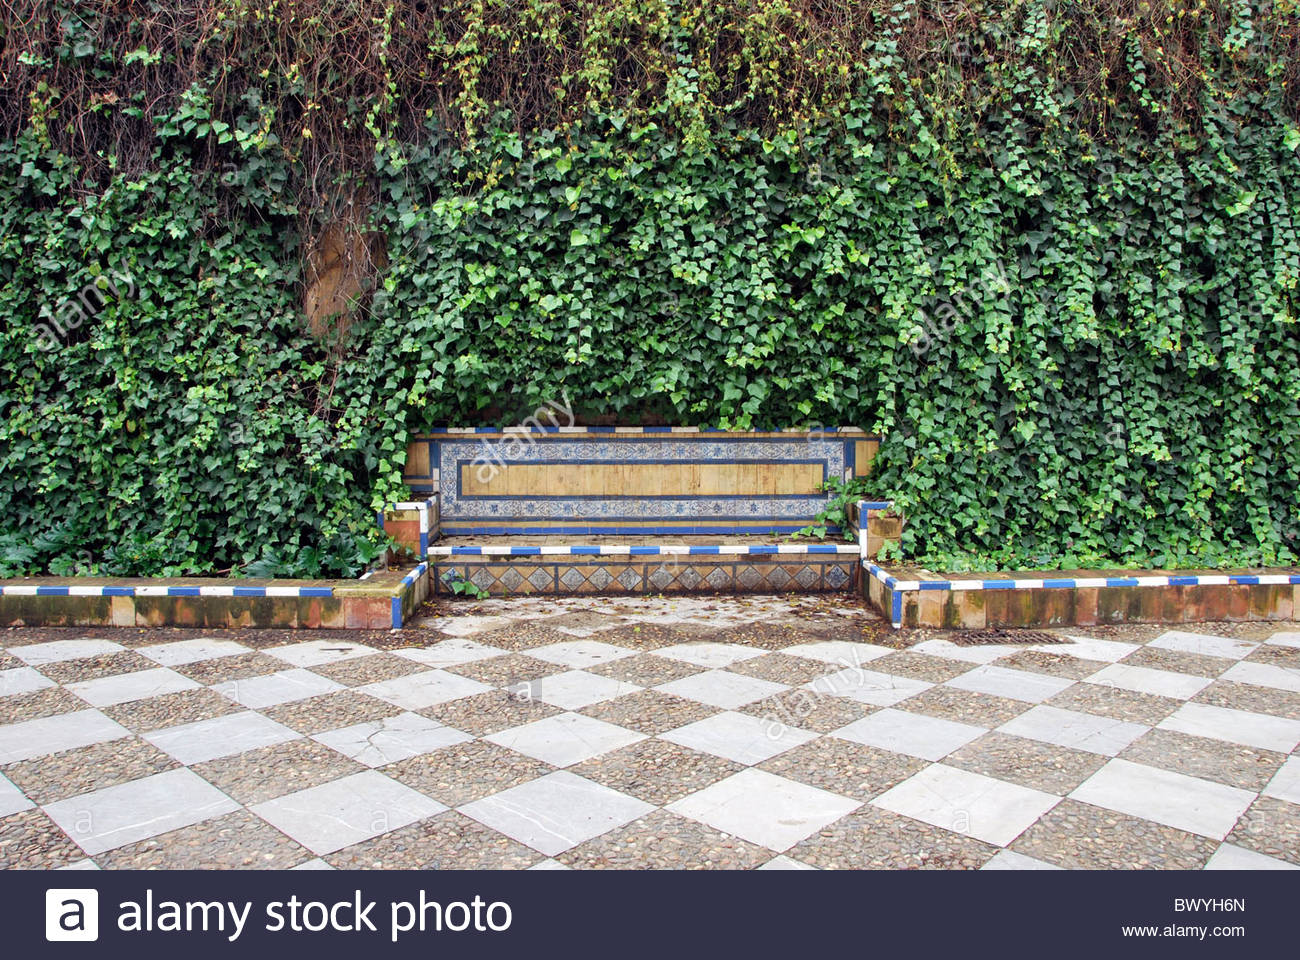 lonely bench surrounded by ivy at the park - Stock Image